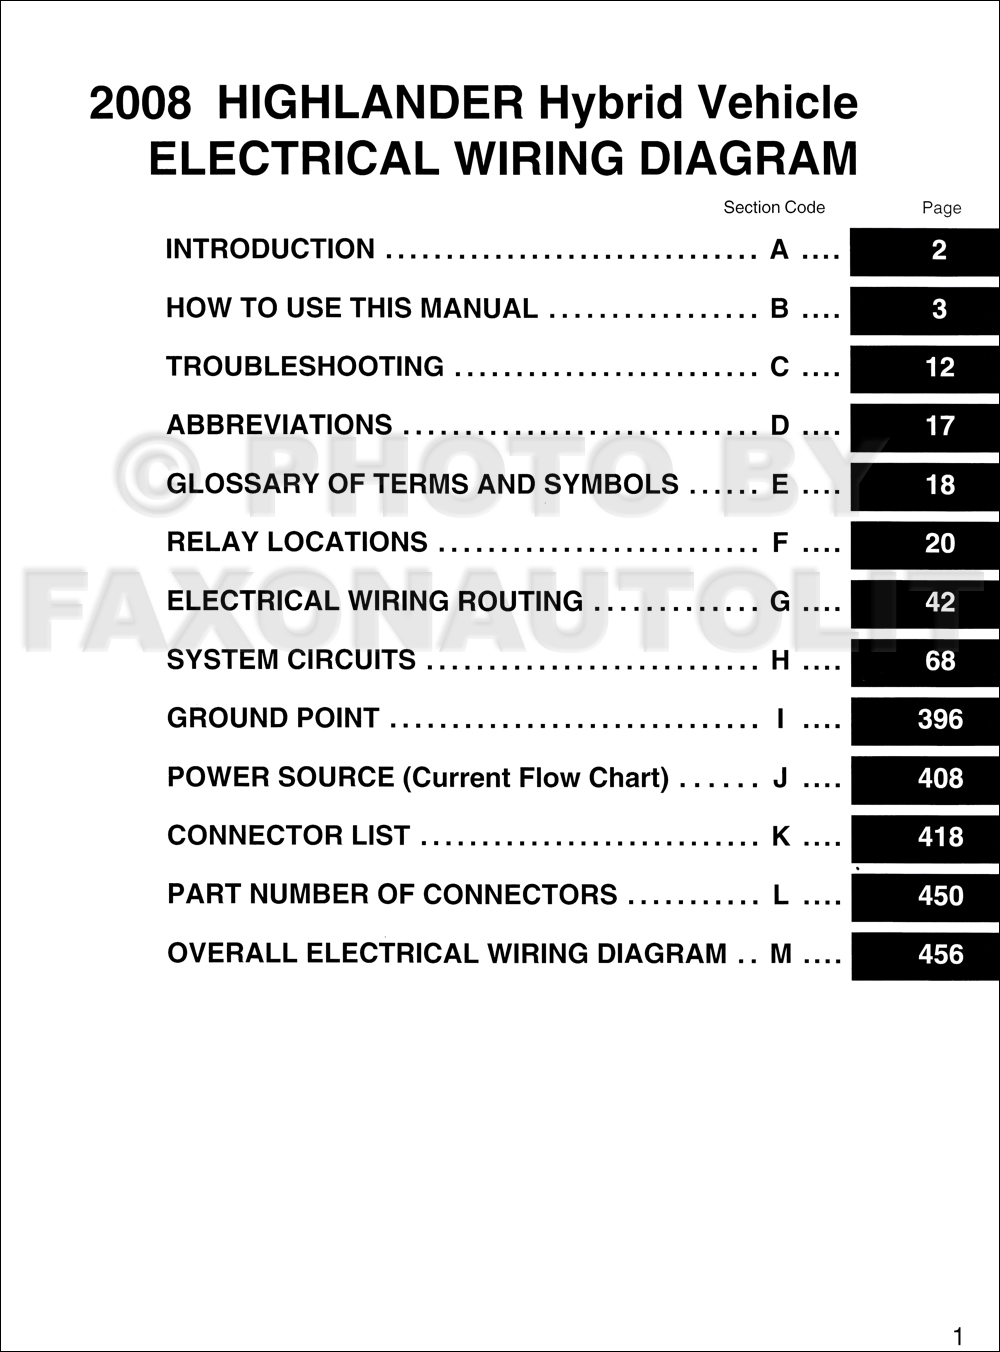 2003 toyota tundra radio wiring diagram 2003 image wiring diagram 2001 tundra wiring diagram for 2001 toyota tundra on 2003 toyota tundra radio wiring